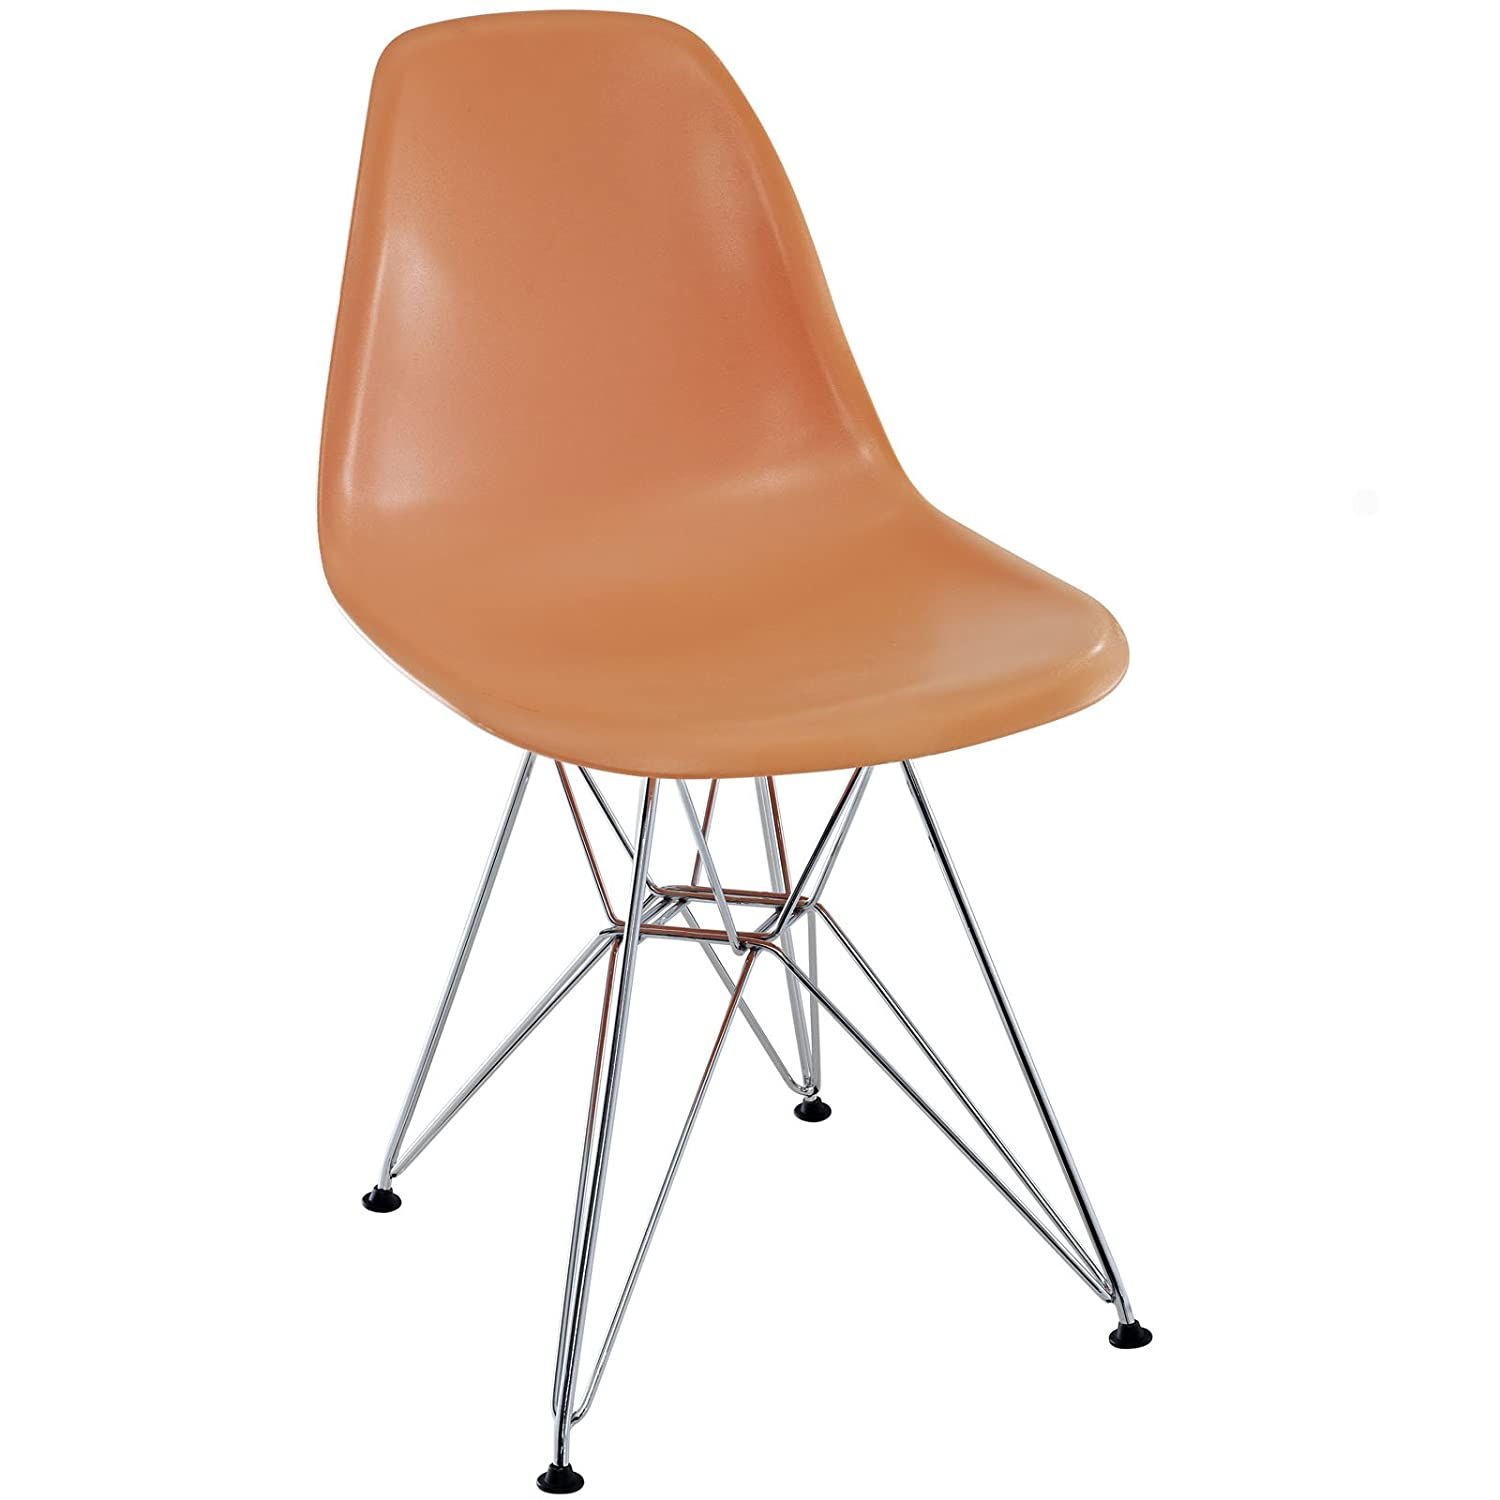 Charles amp ray eames eames dsw side chair fiberglass replica - Amazon Com Herman Miller Eames Dsr Style Molded Plastic Eiffel Side Chair Orange Chairs